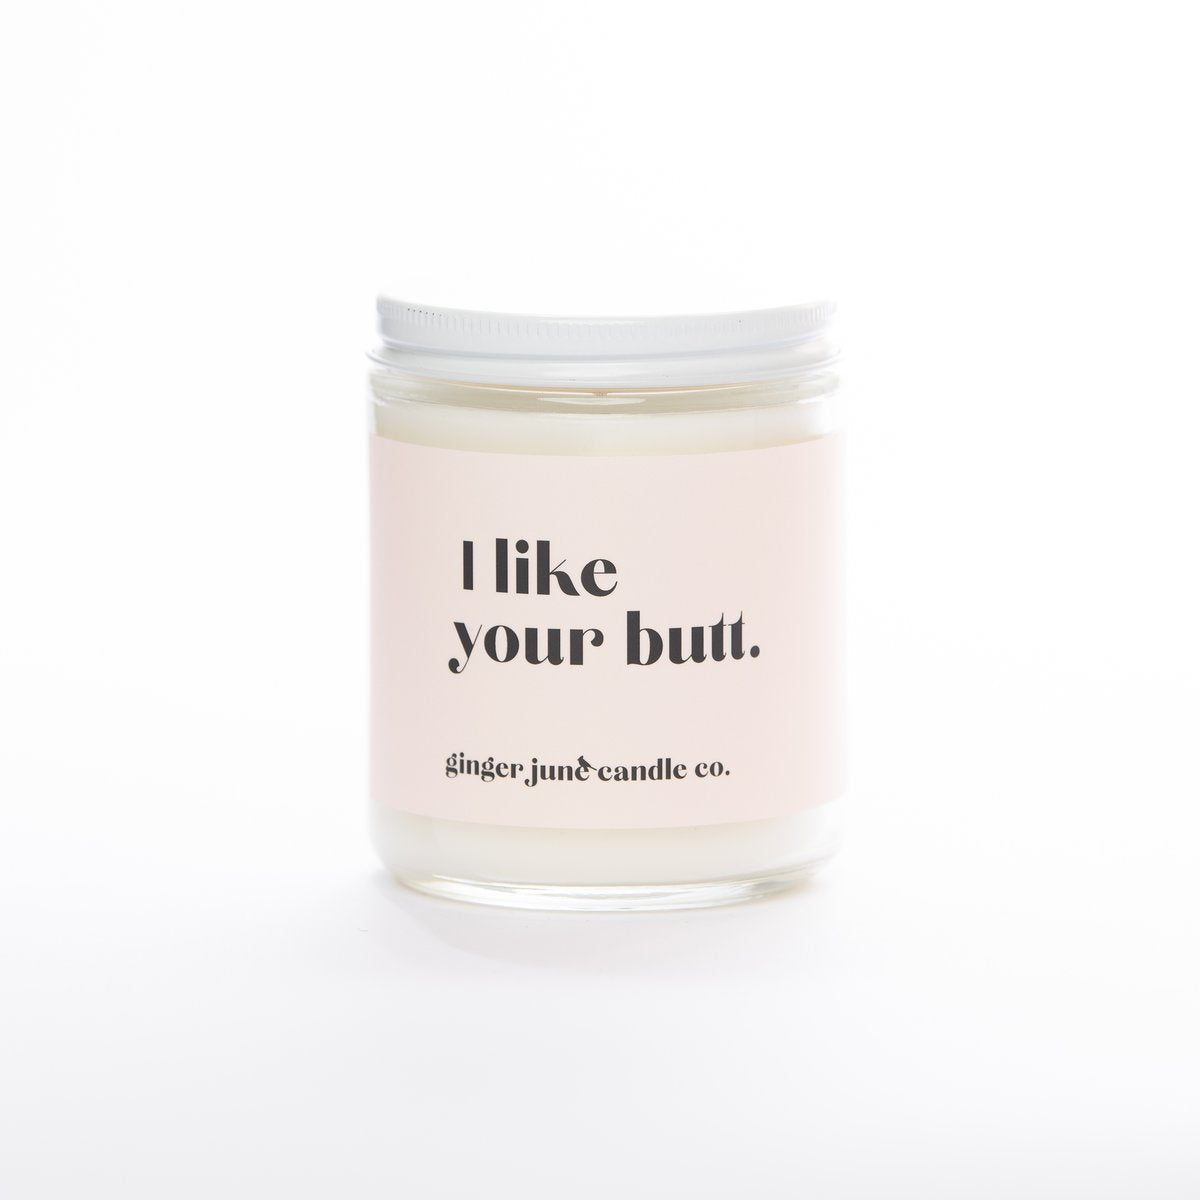 Ginger & June Candle: I Like Your Butt